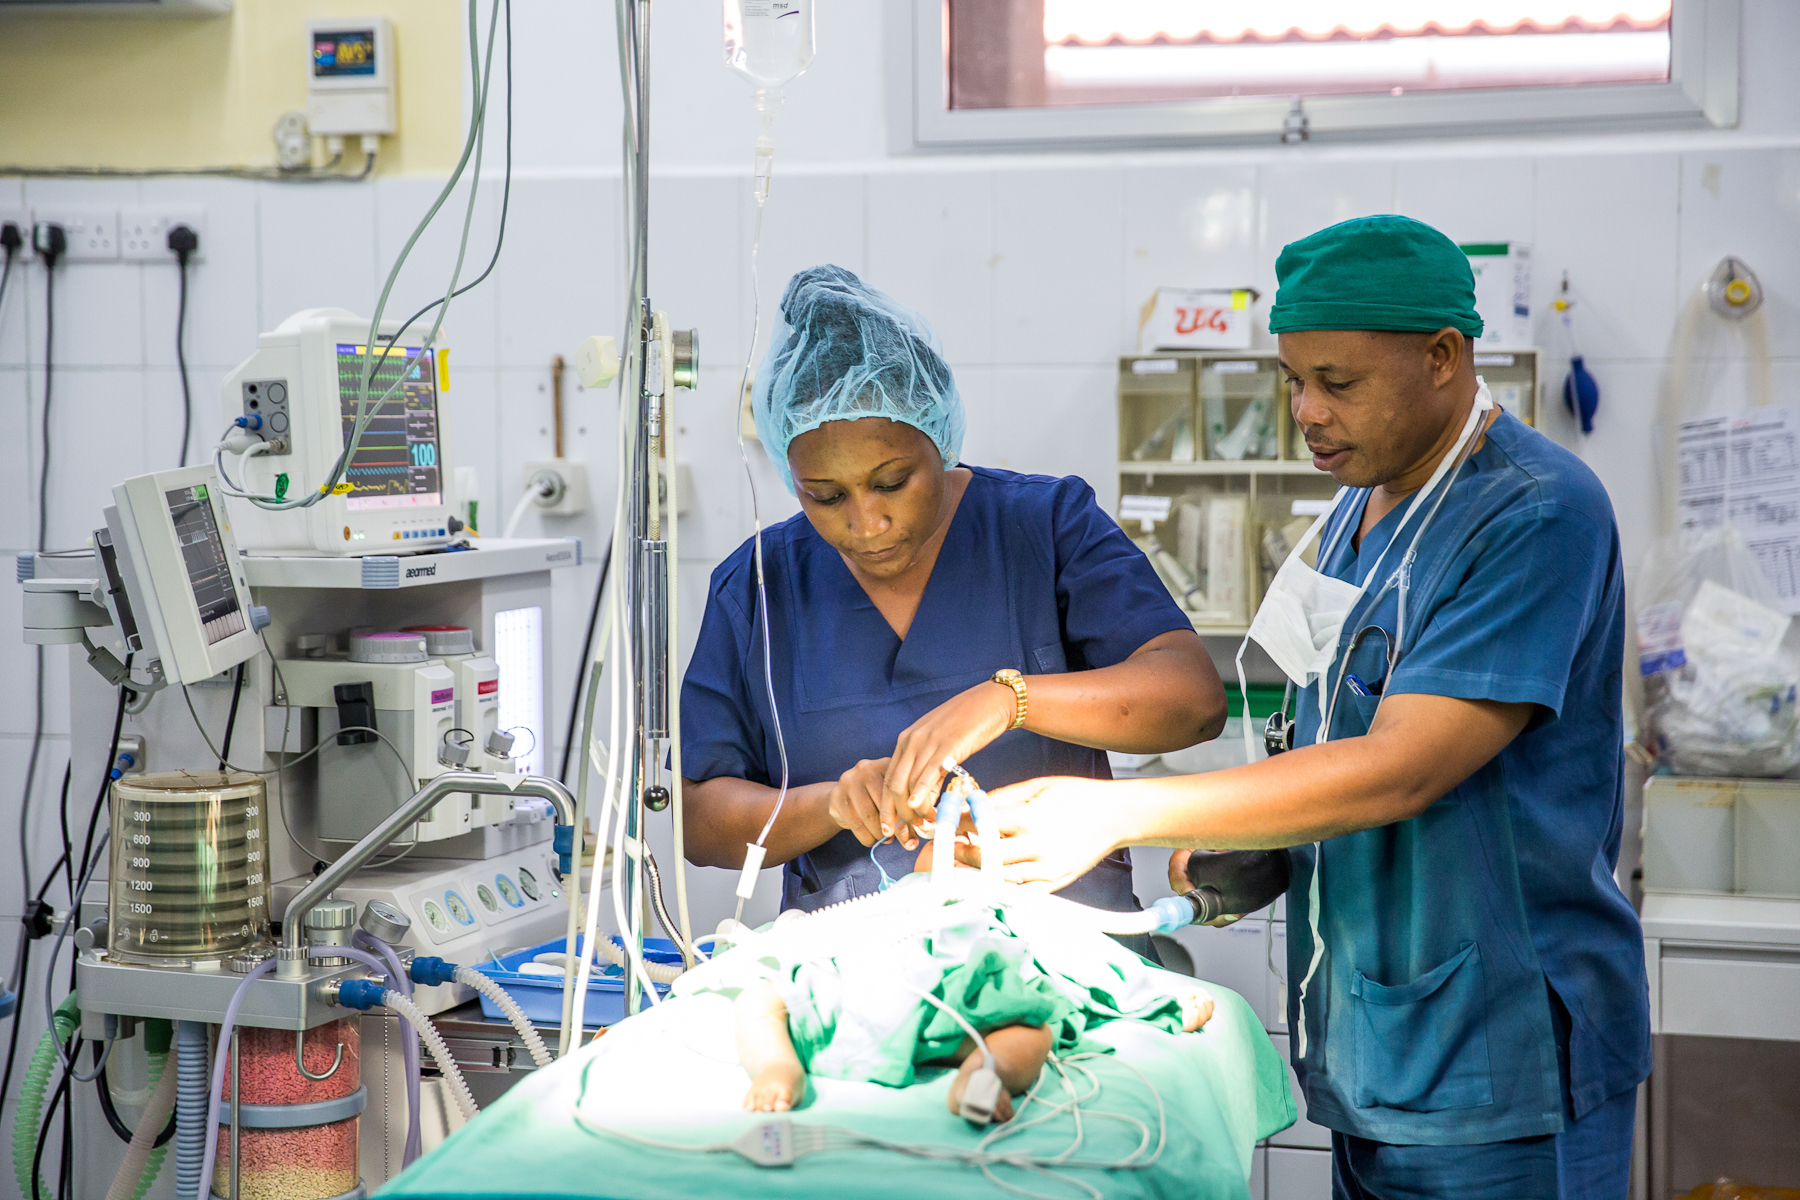 There are major shortages of skilled anesthesiologists in Tanzania. Photo credit: Sala Lewis